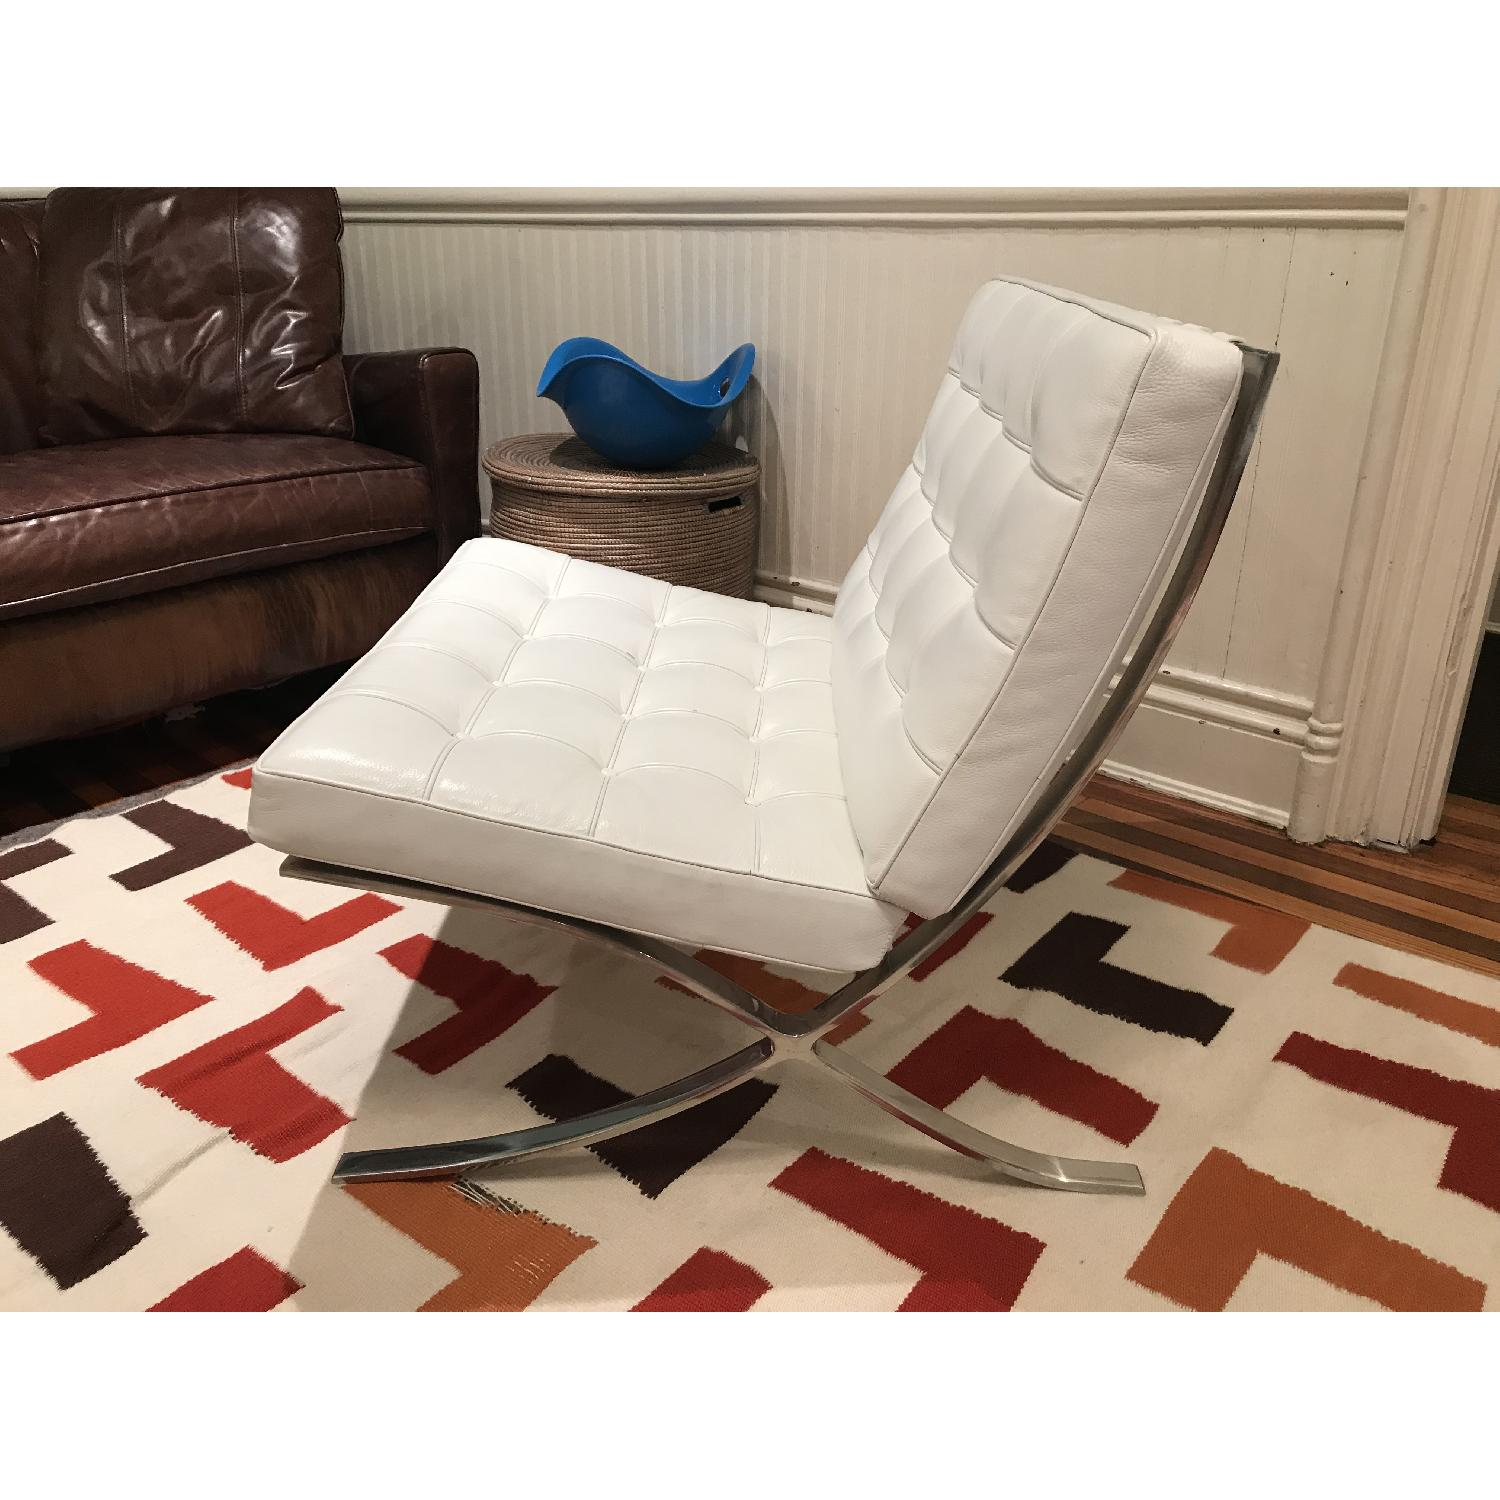 White Leather Barcelona Replica Chairs - image-4